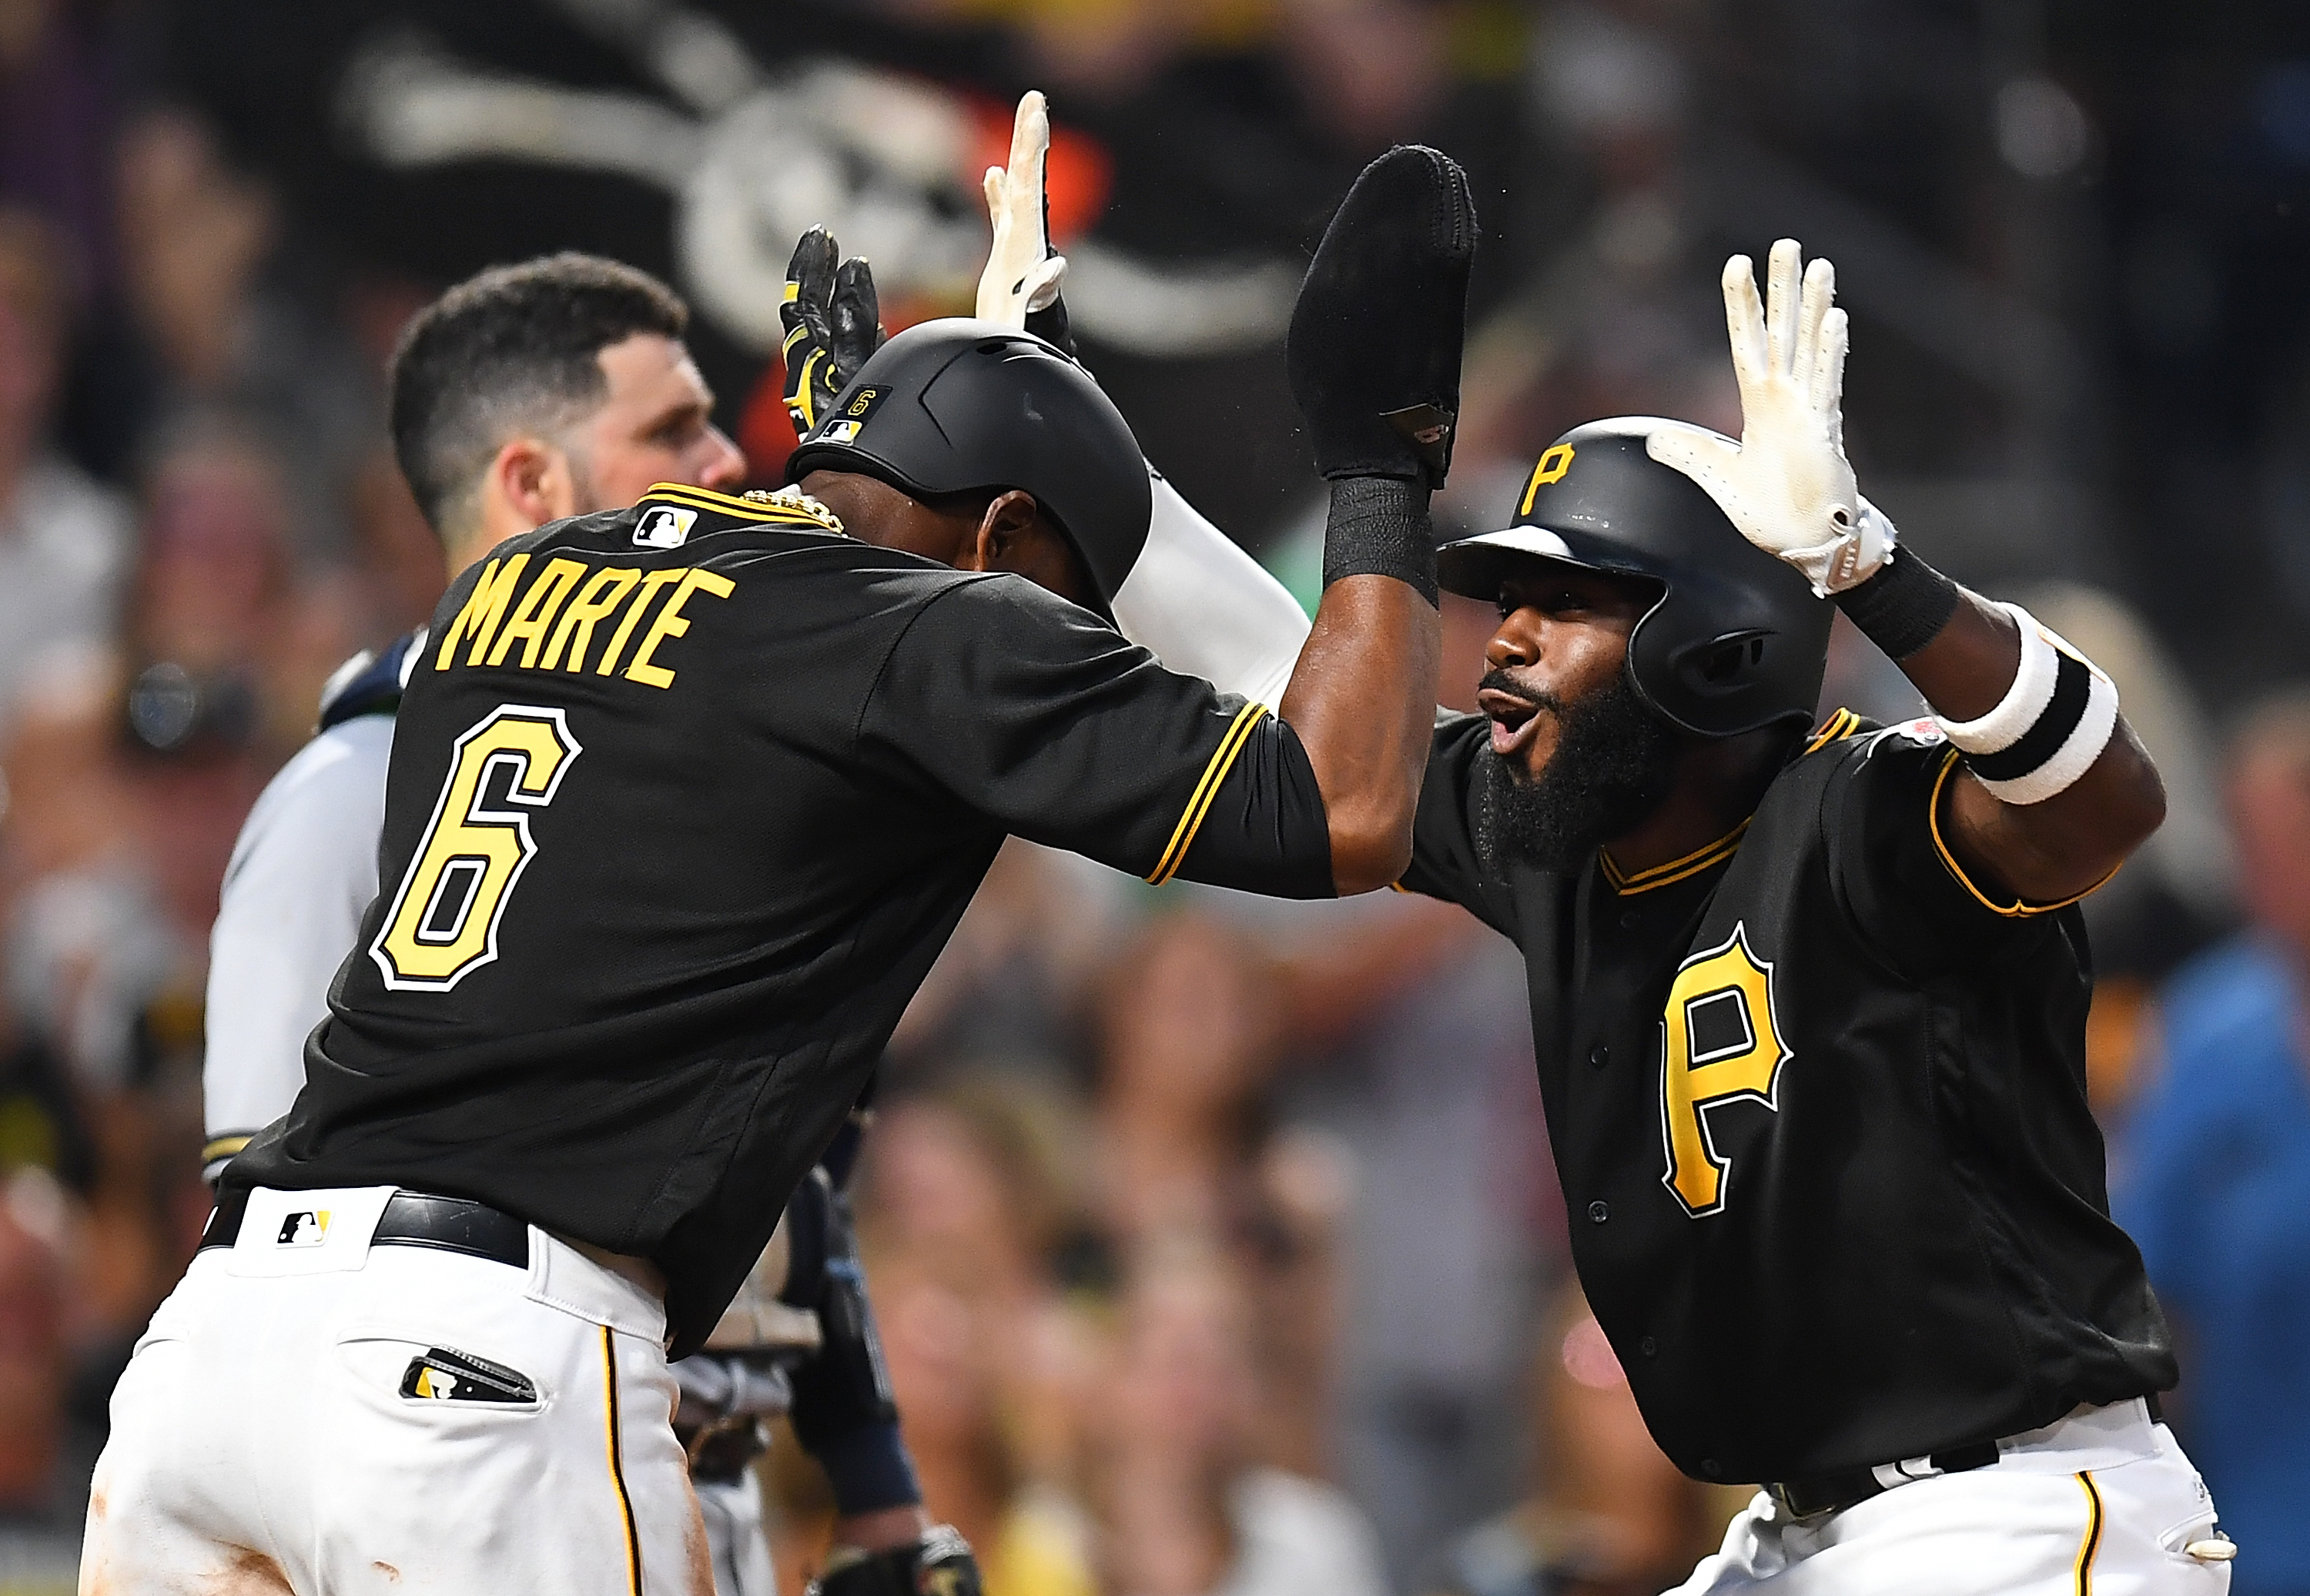 Pittsburgh Pirates: Pittsburgh Pirates Beat Brewers, Continue To Pull Closer